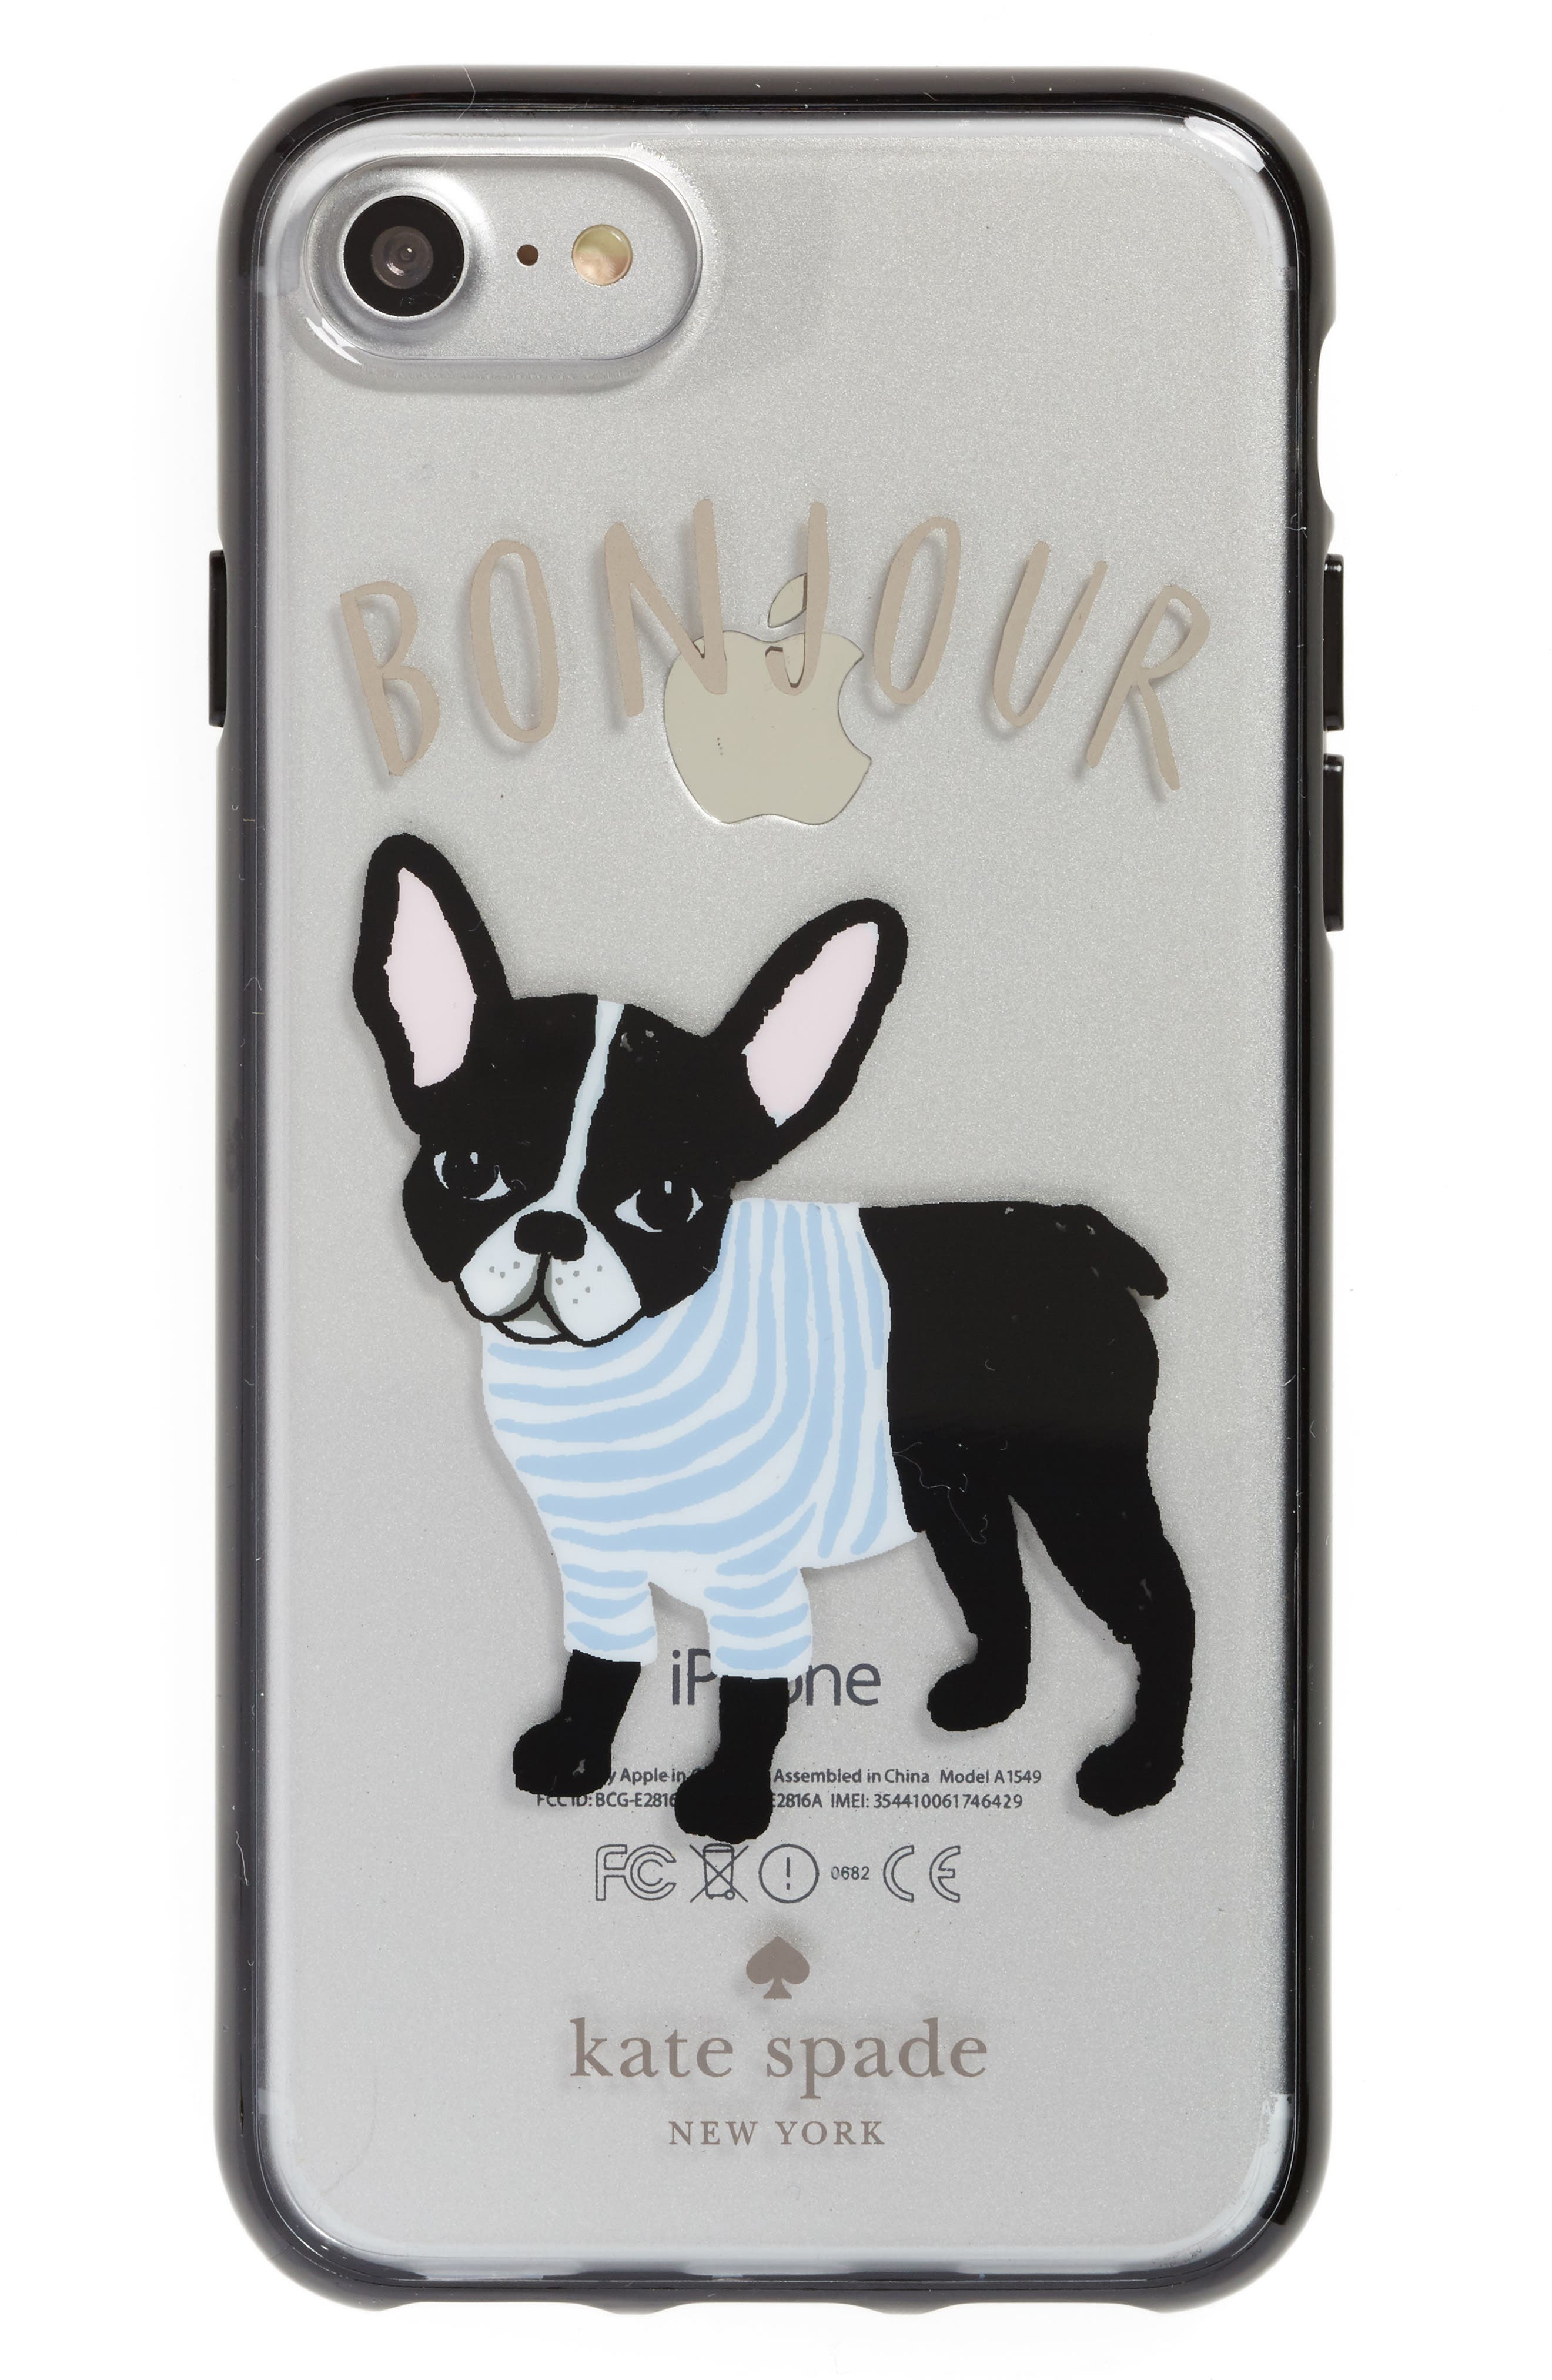 Main Image - kate spade new york bonjour iPhone 7/8 & 7/8 Plus case